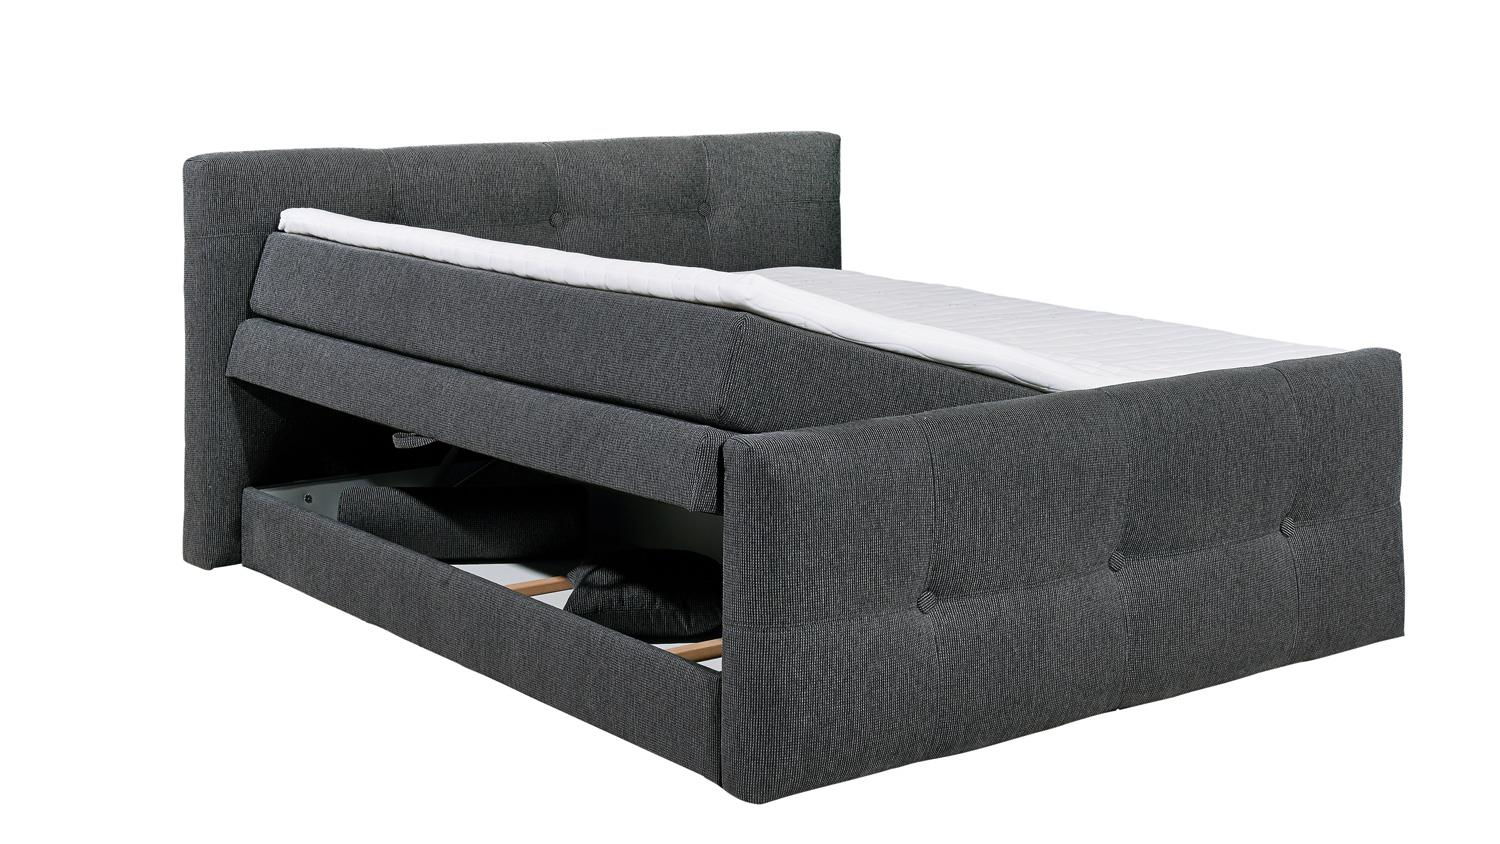 boxspringbett illinois c1 lawa grau topper bettkasten 180x200. Black Bedroom Furniture Sets. Home Design Ideas